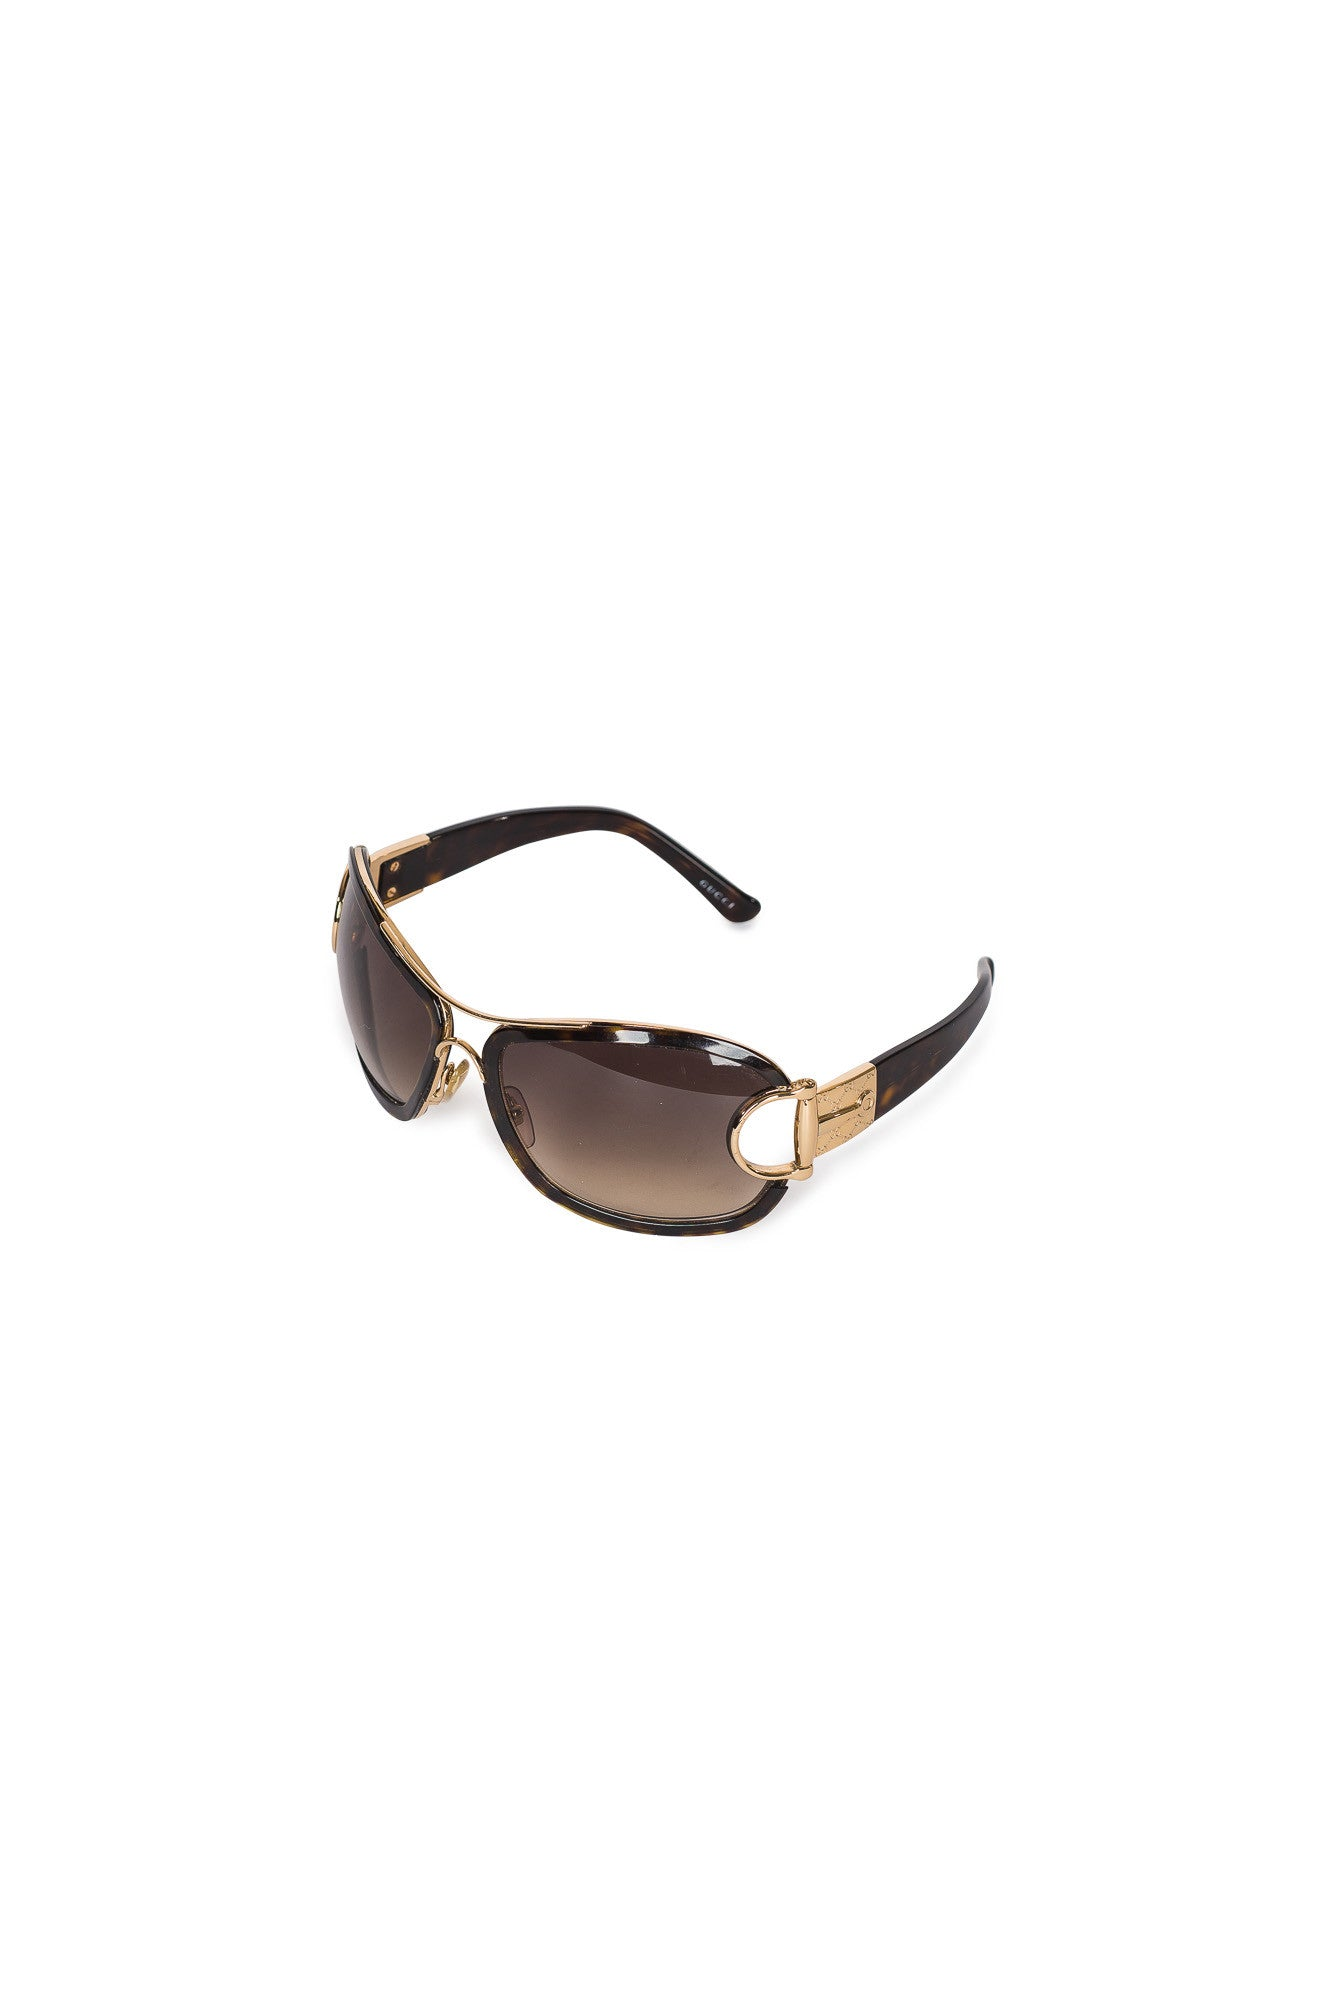 GUCCI Horsebit Aviator Sunglasses